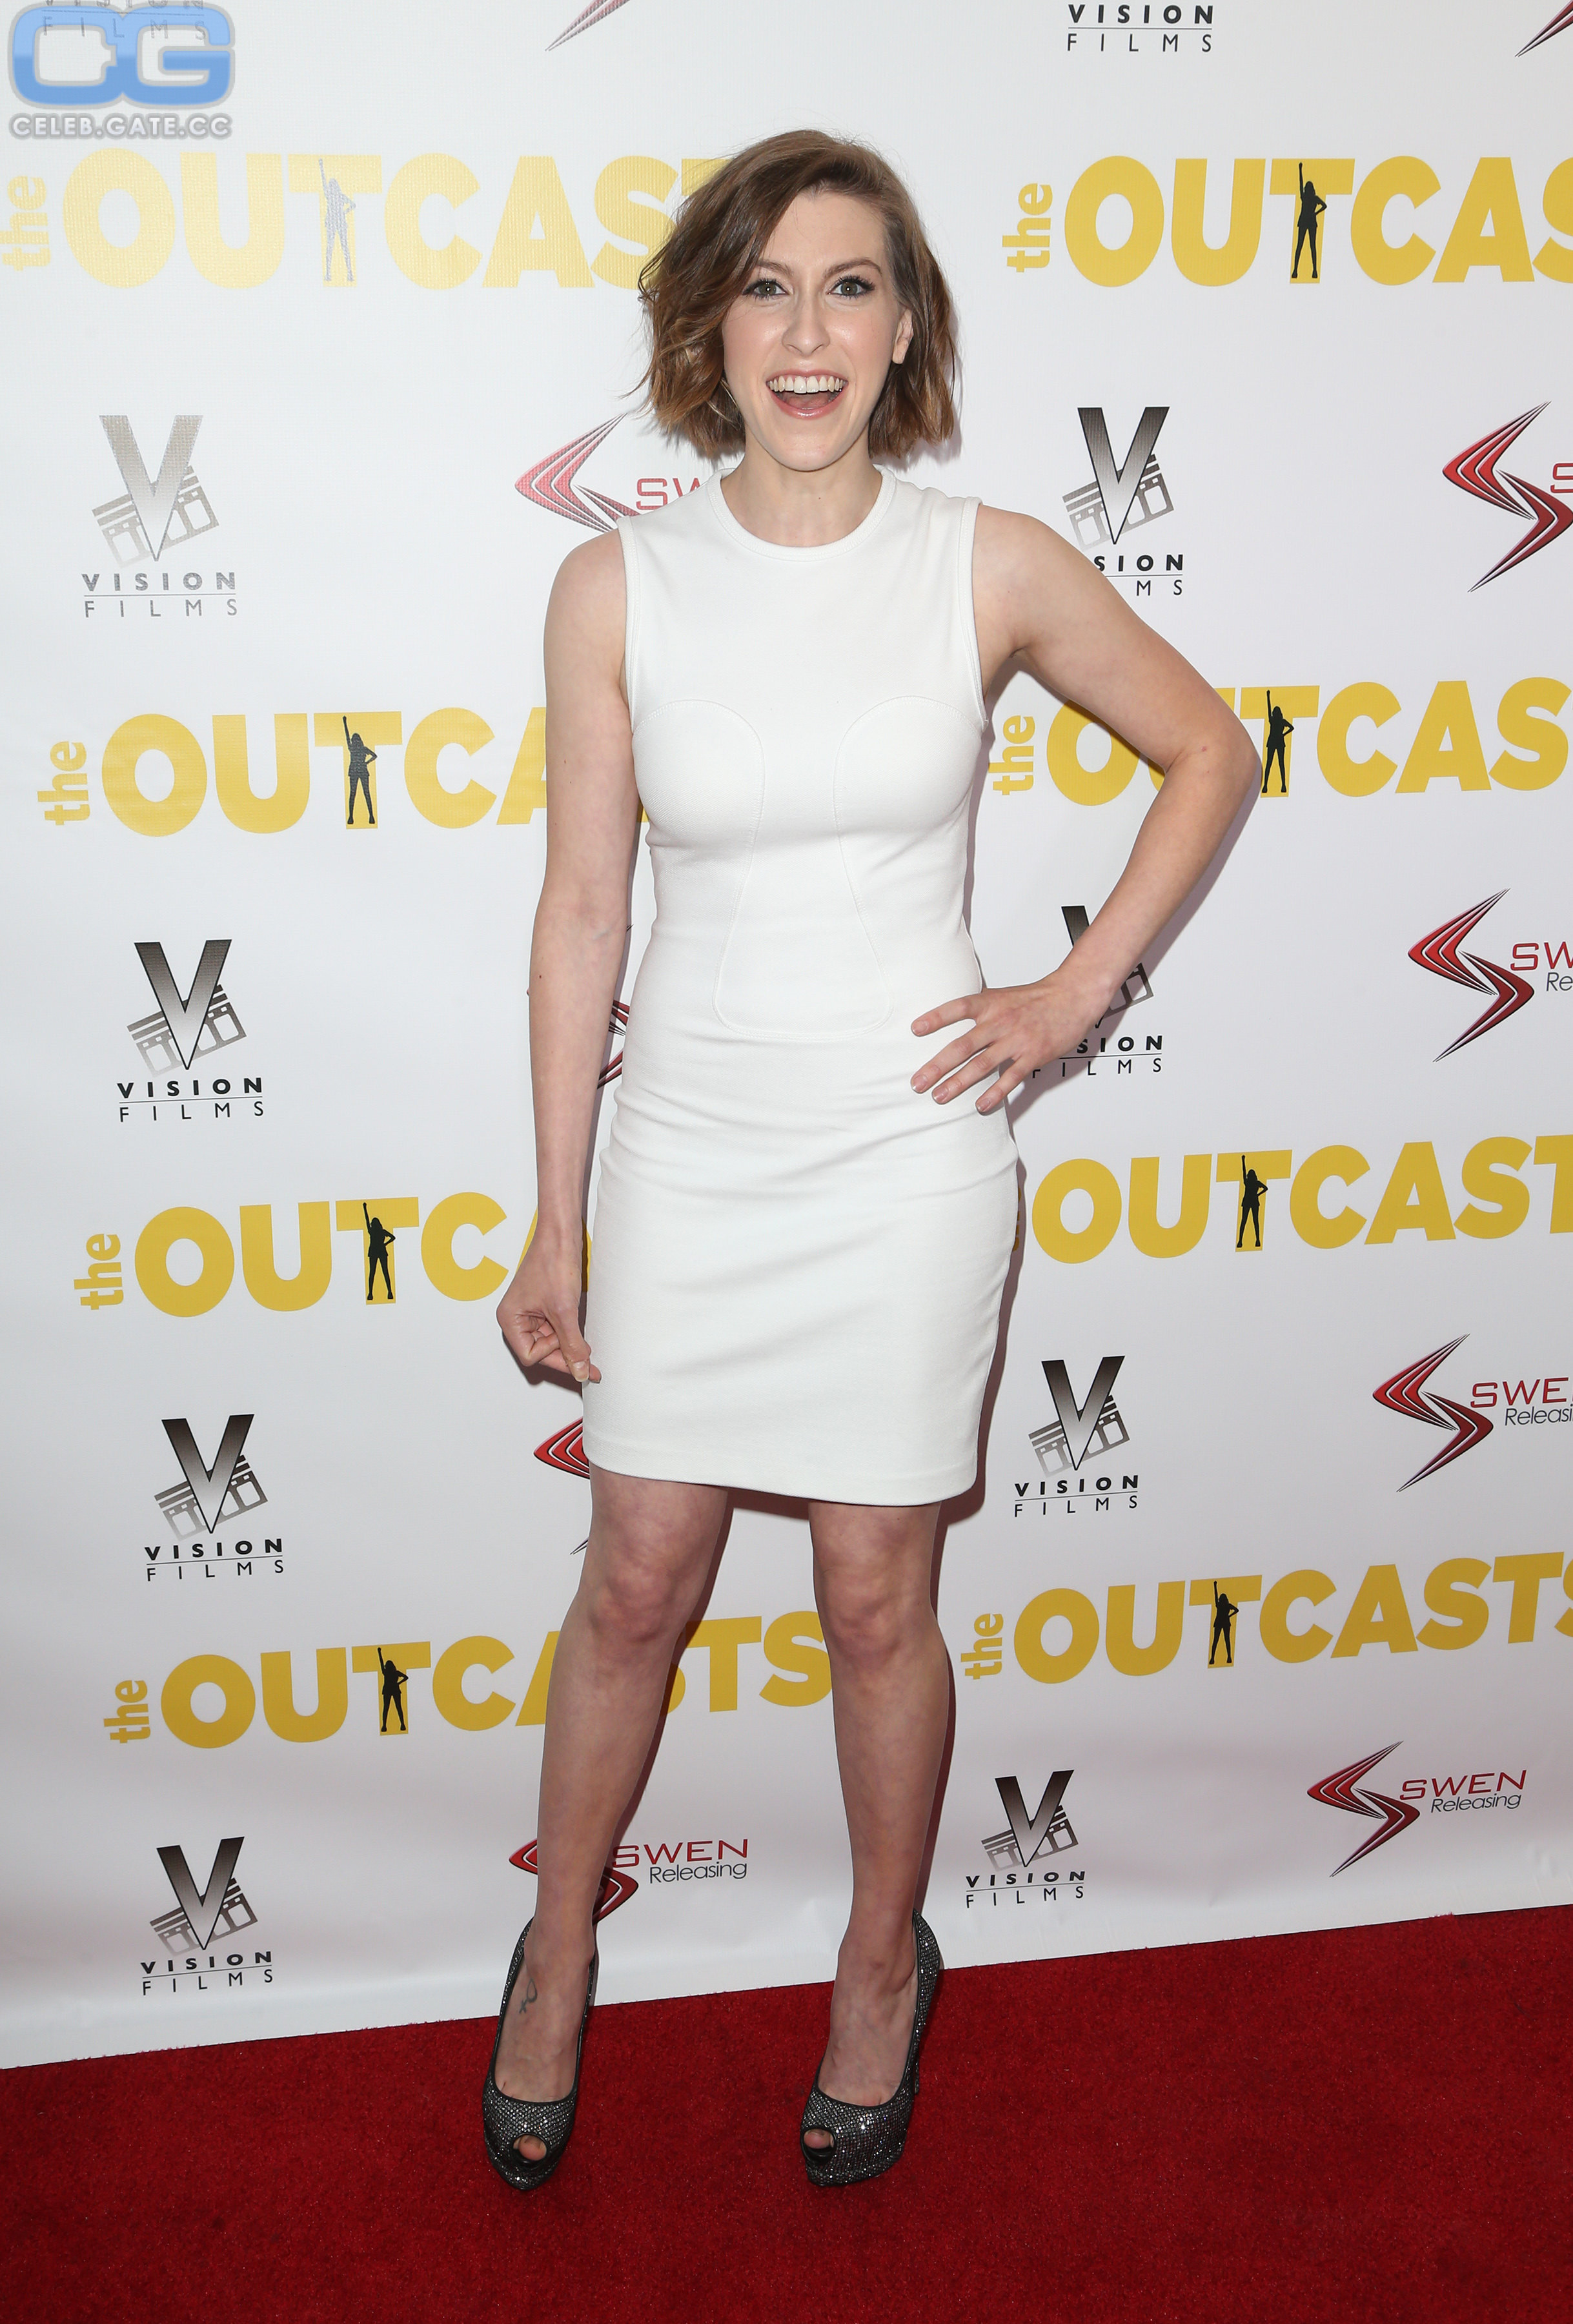 Topless eden sher 40 Sexy